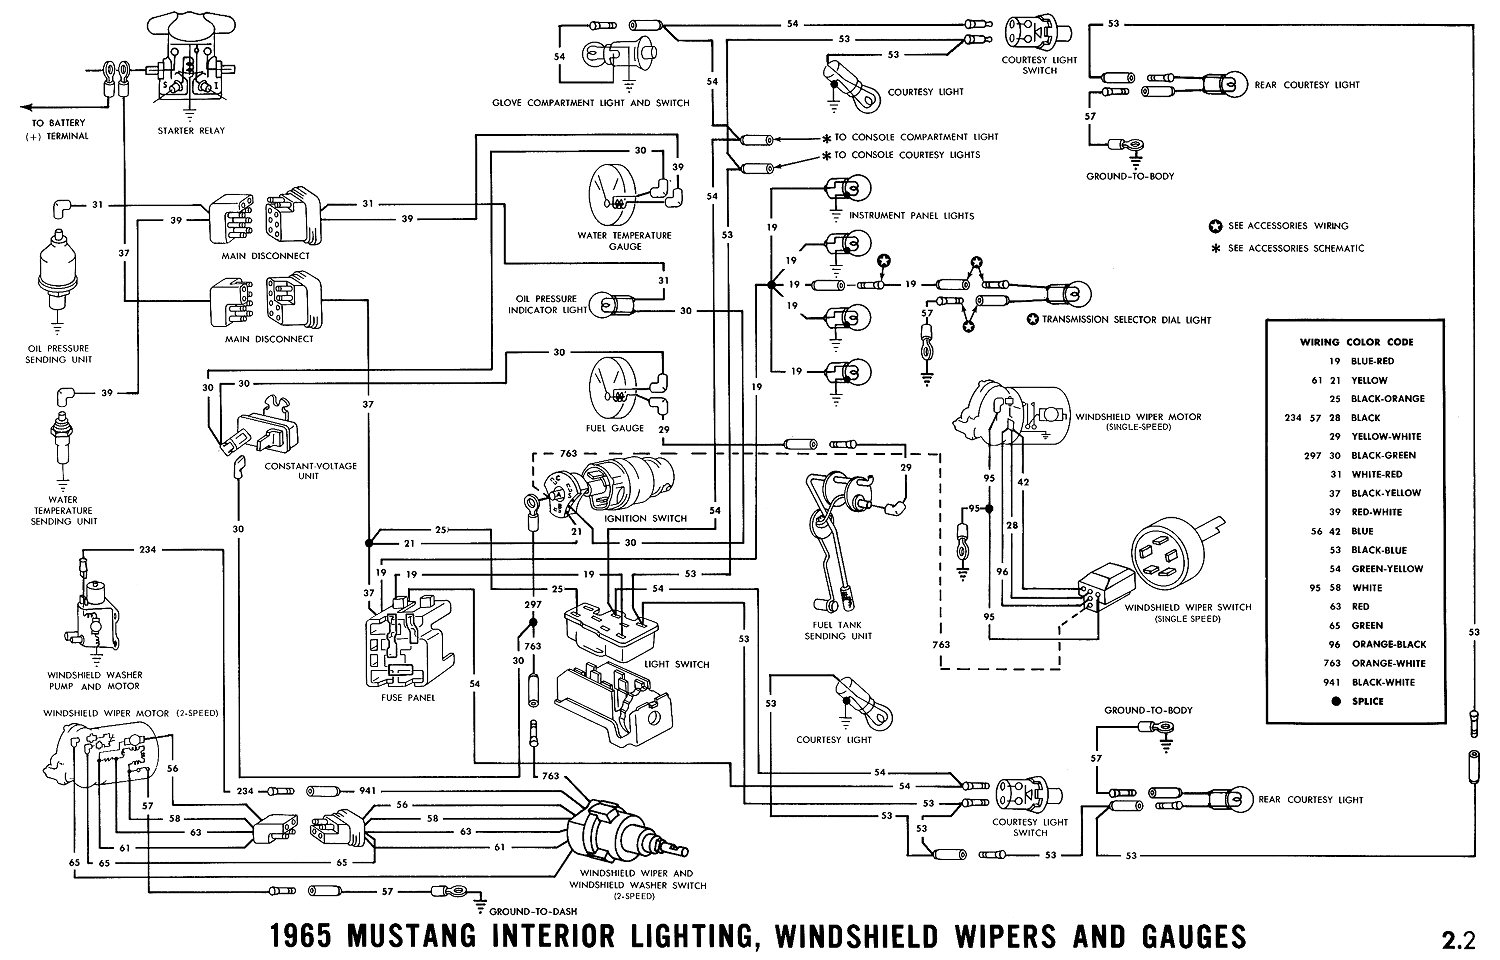 1990 Mustang Wiring Diagram - 1990 Mustang Wiring Diagram Download Mustang Alternator Wiring Diagram with Simple Pics 1990 Diagrams Stuning 6b